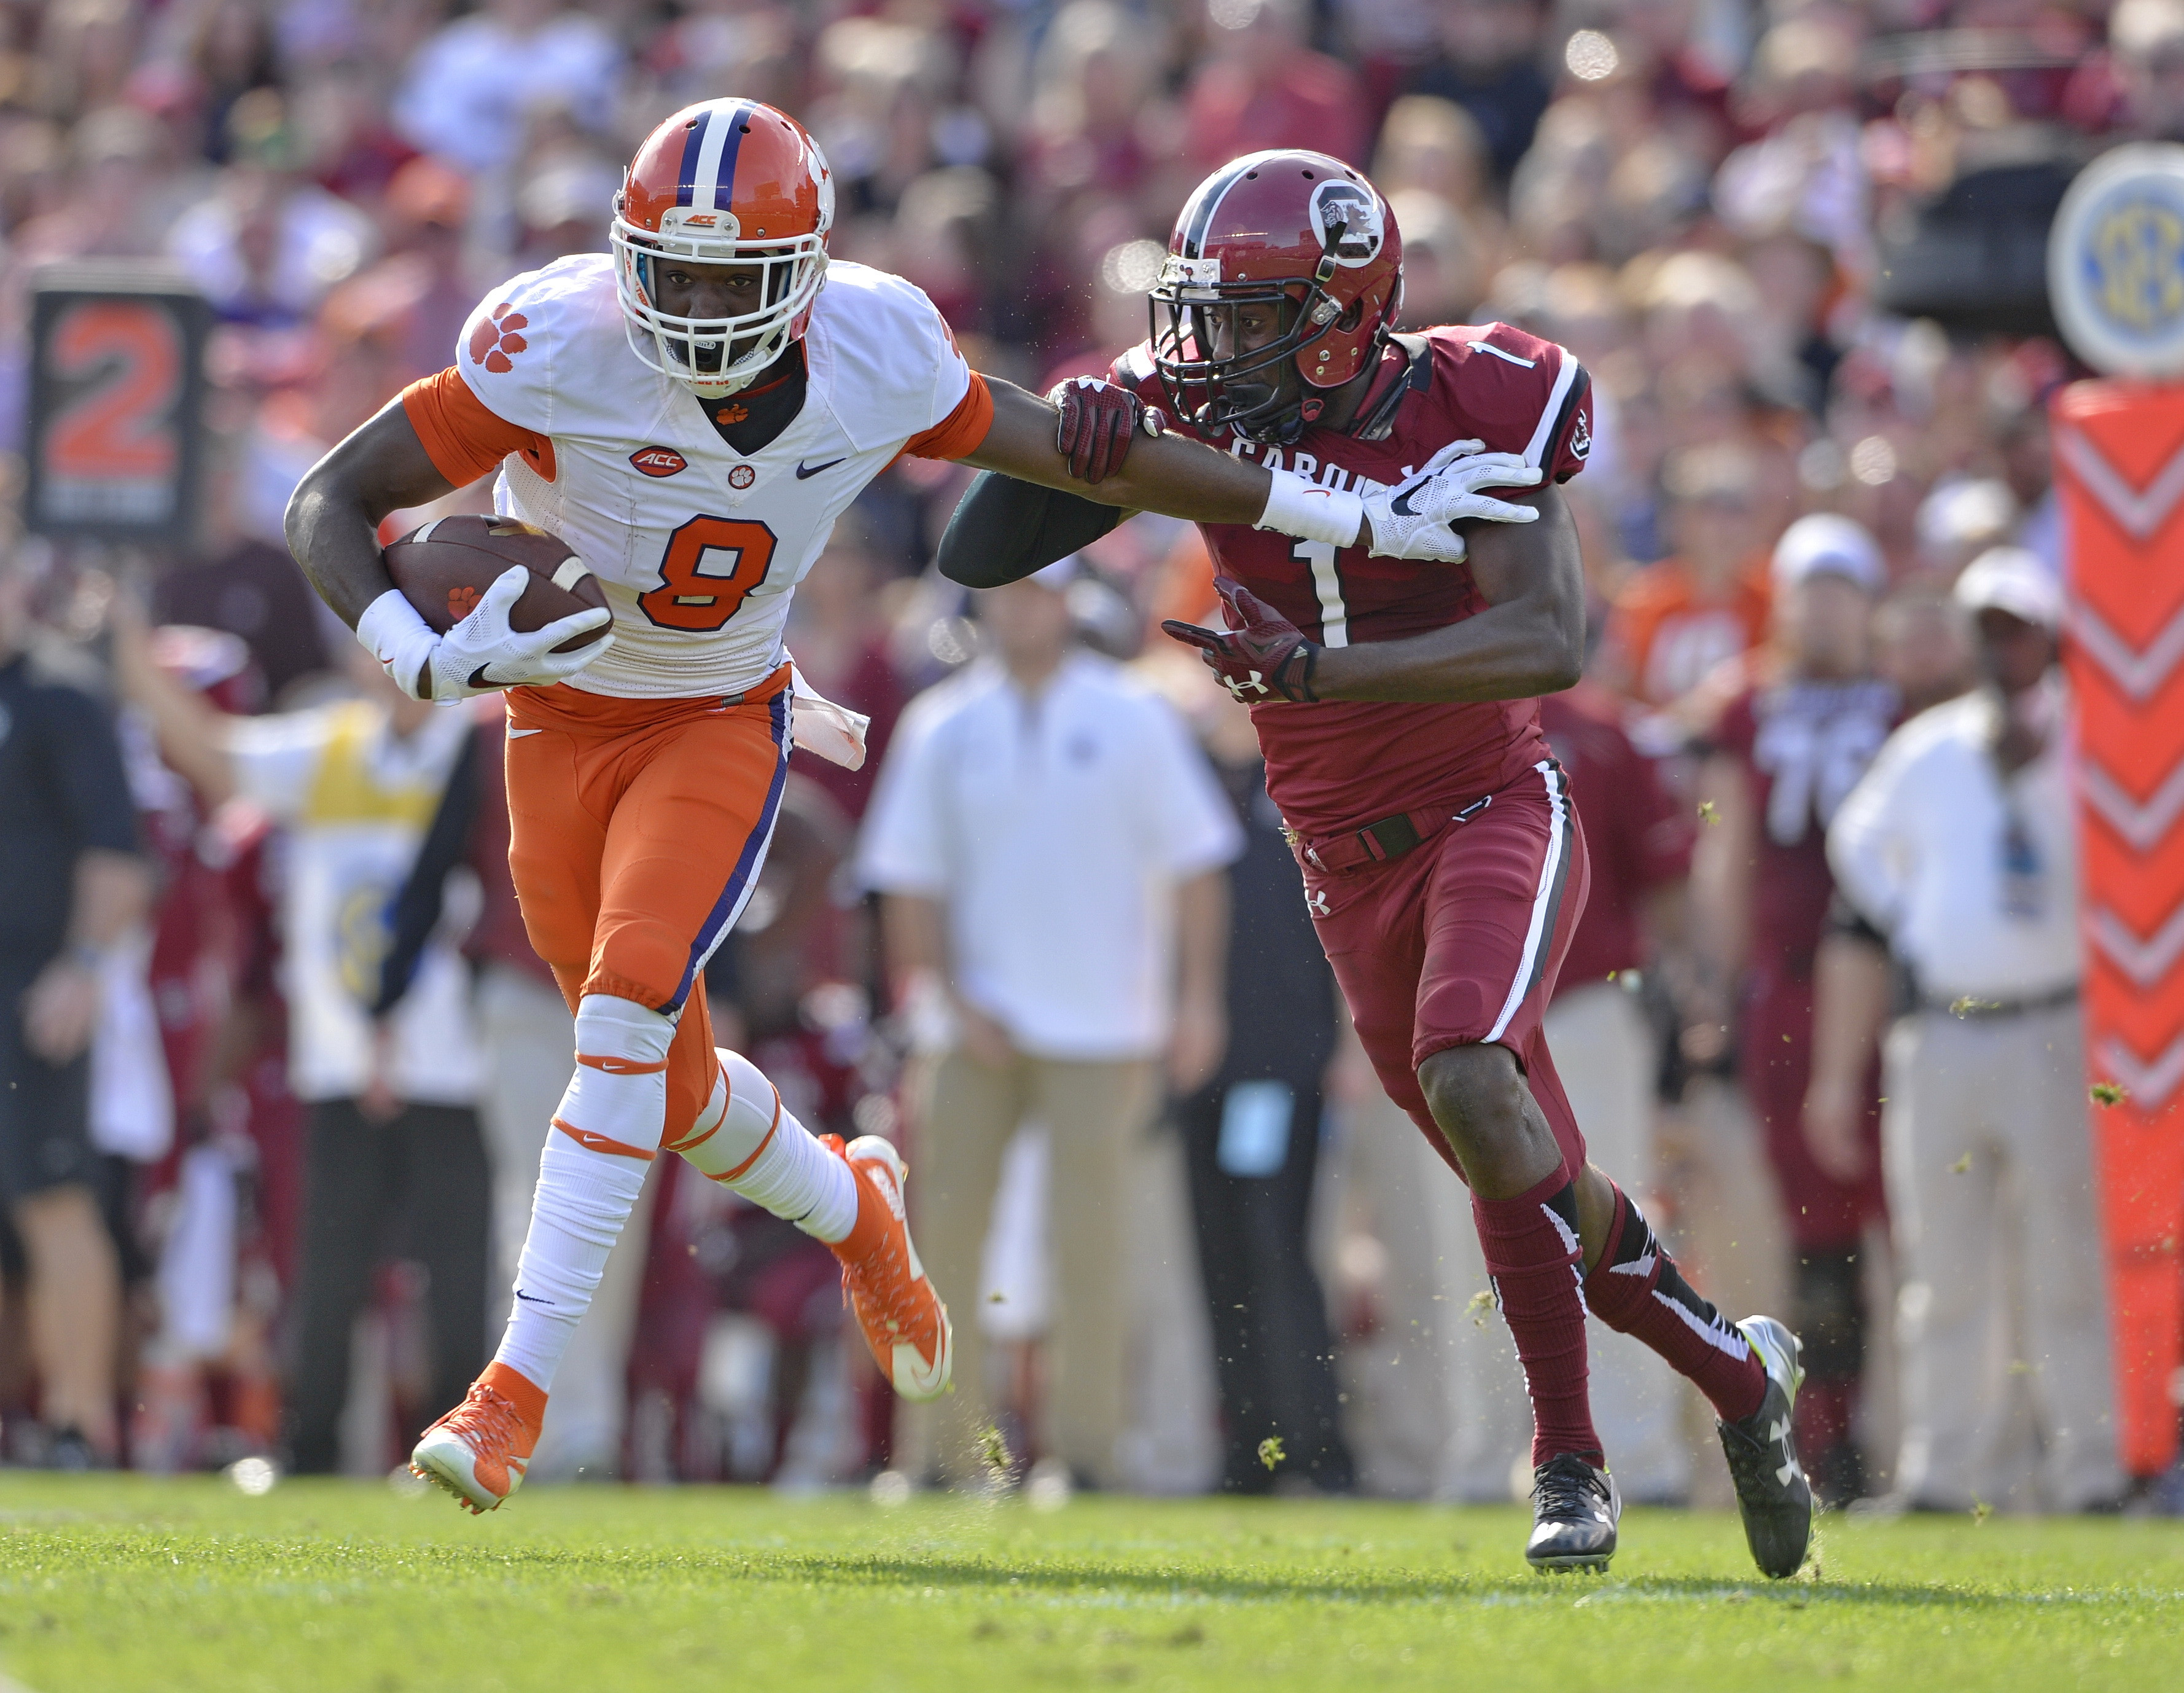 Clemson's Wayne Gallman runs through the tackle attempt of South Carolina's Rico McWilliams during the first half of an NCAA college football game Saturday,  Nov. 28, 2015,  in Columbia,  S.C. (AP Photo/Richard Shiro)